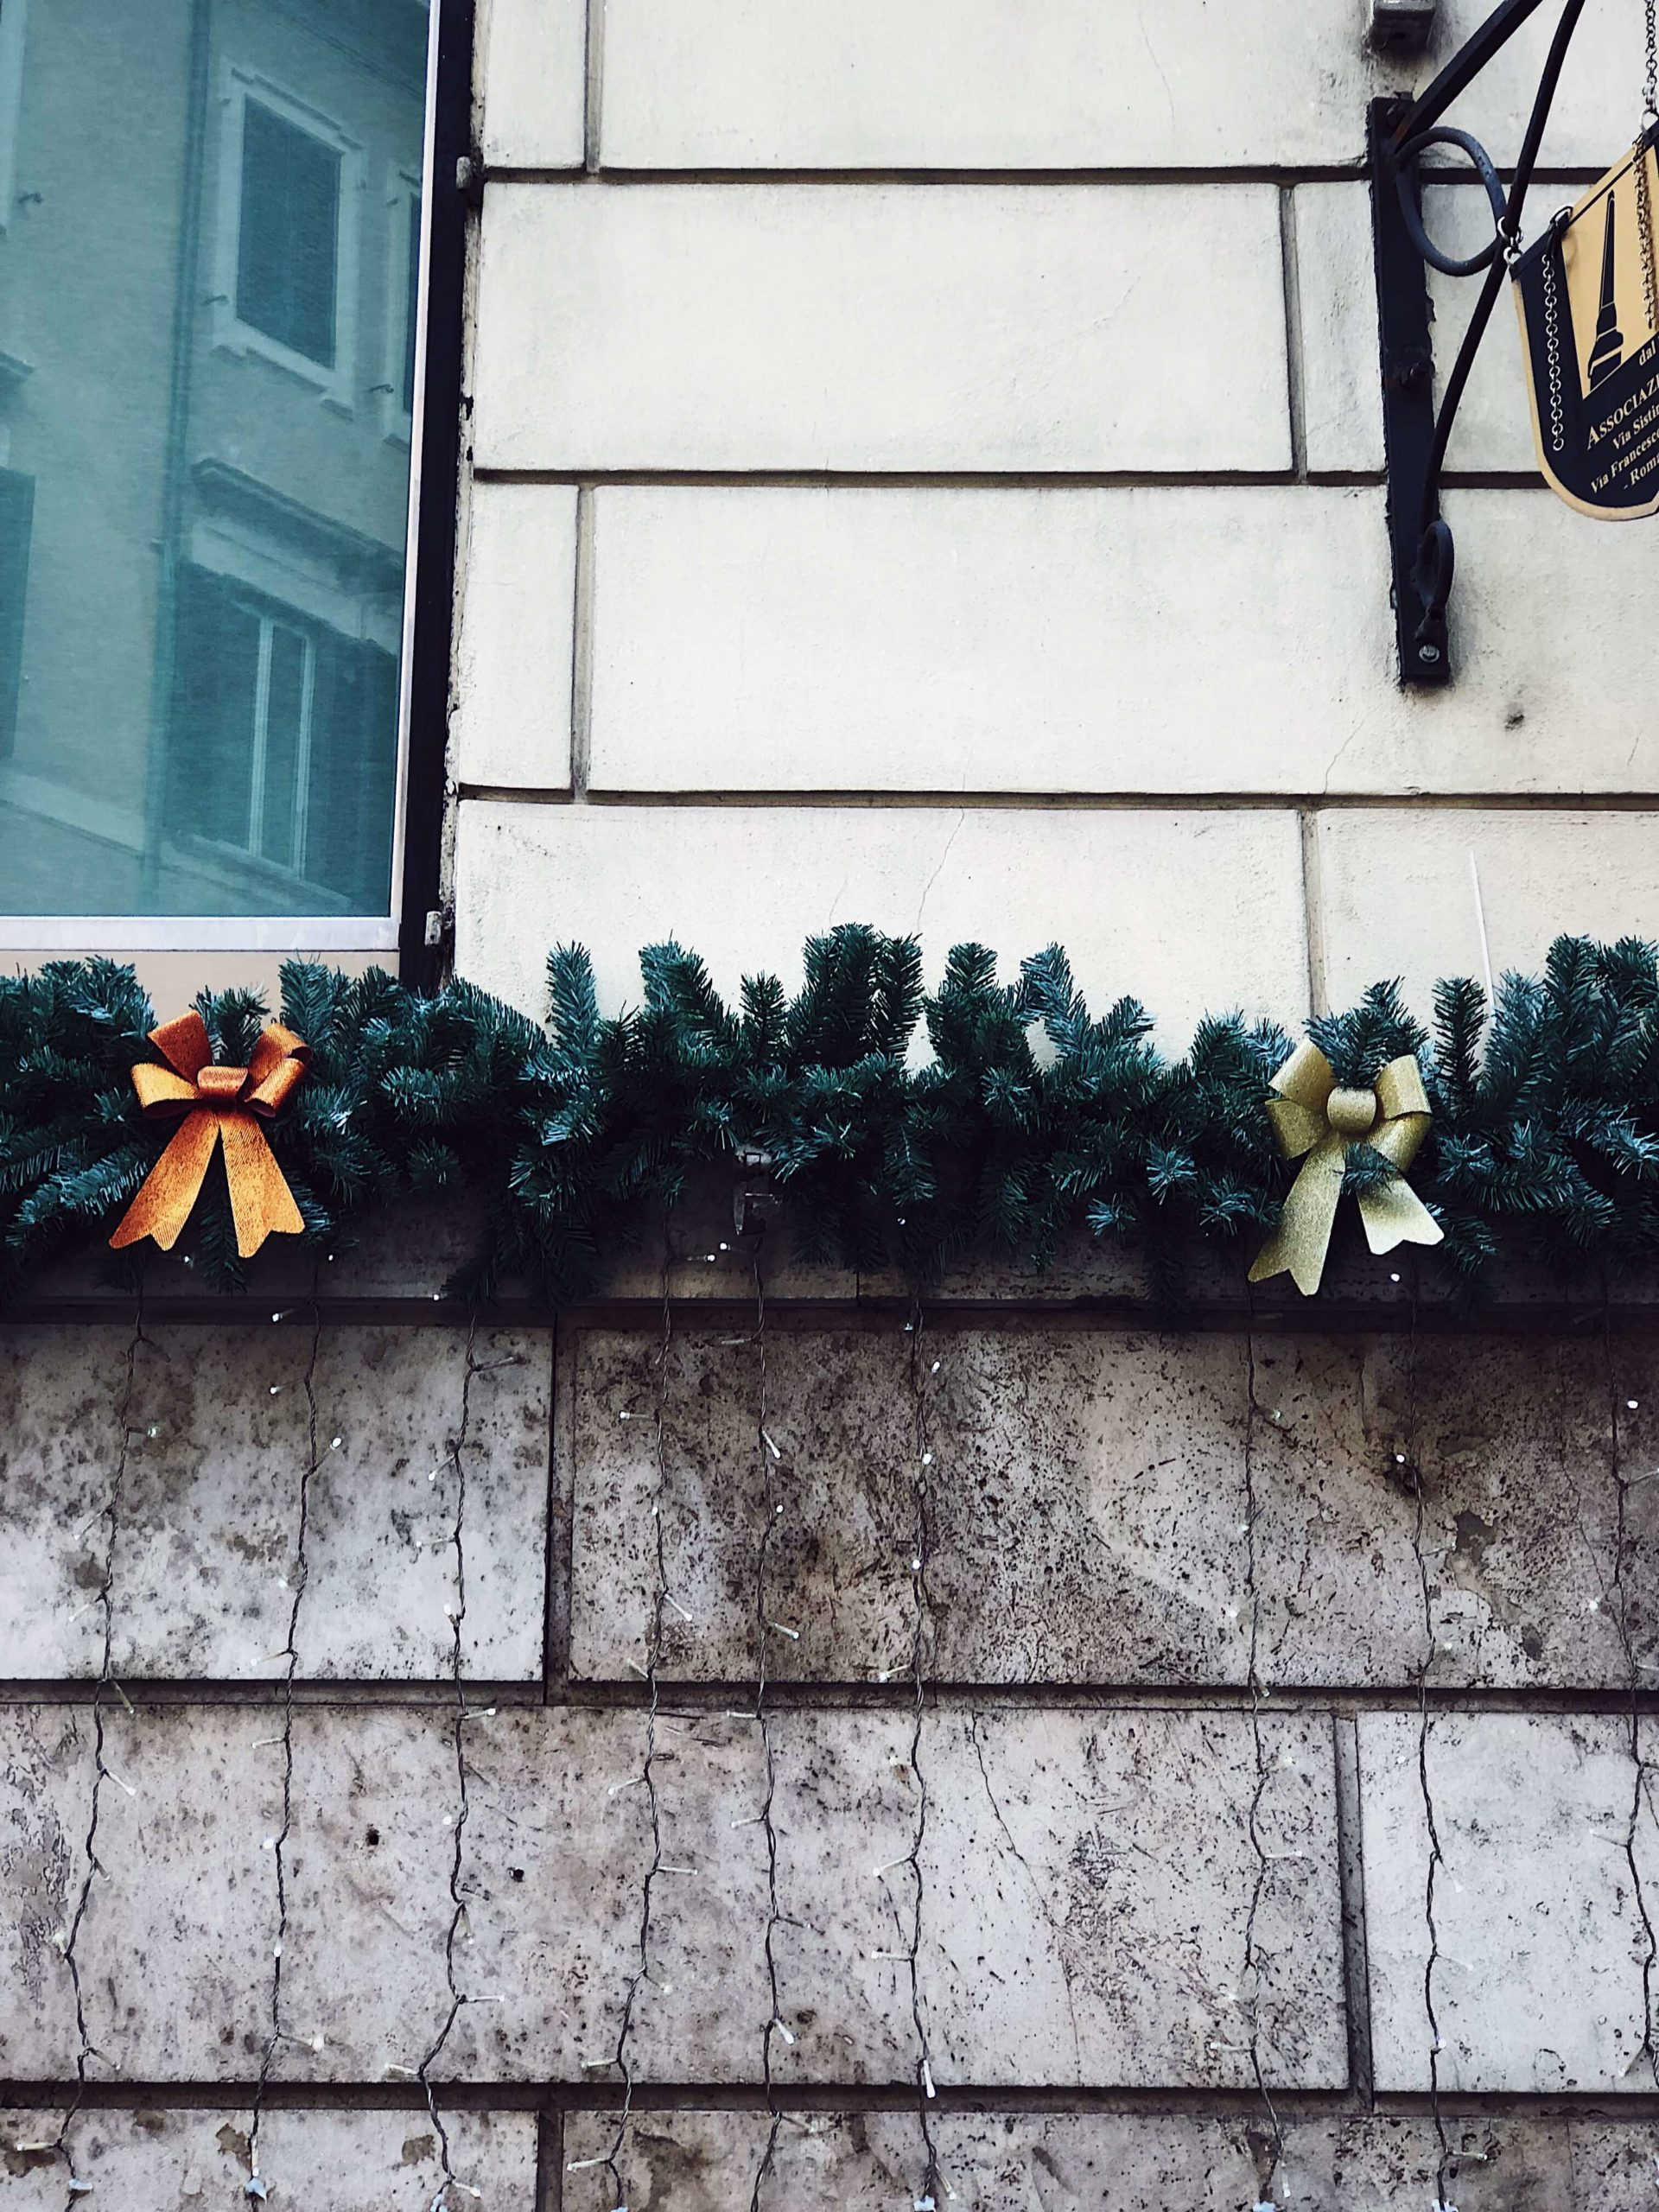 Christmas street decorations in Rome made with bows